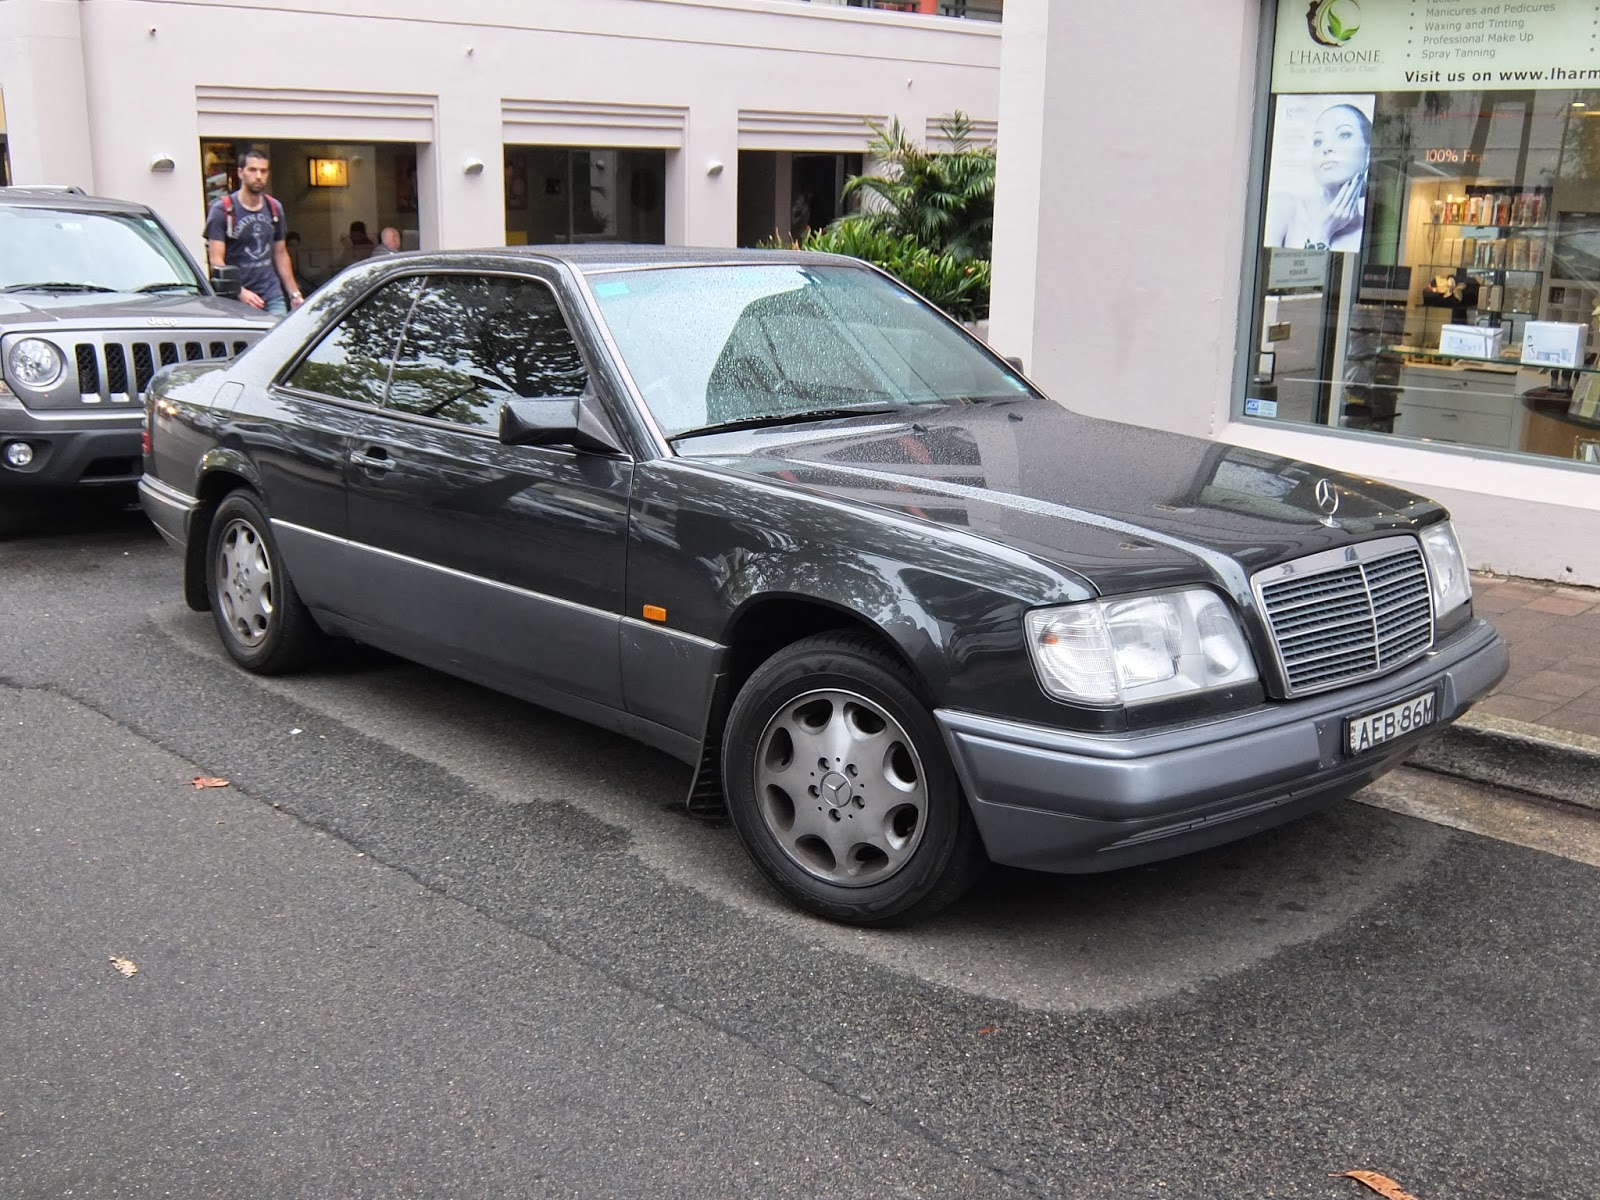 Aussie old parked cars 1996 mercedes benz w124 e 220 coupe for 1996 mercedes benz